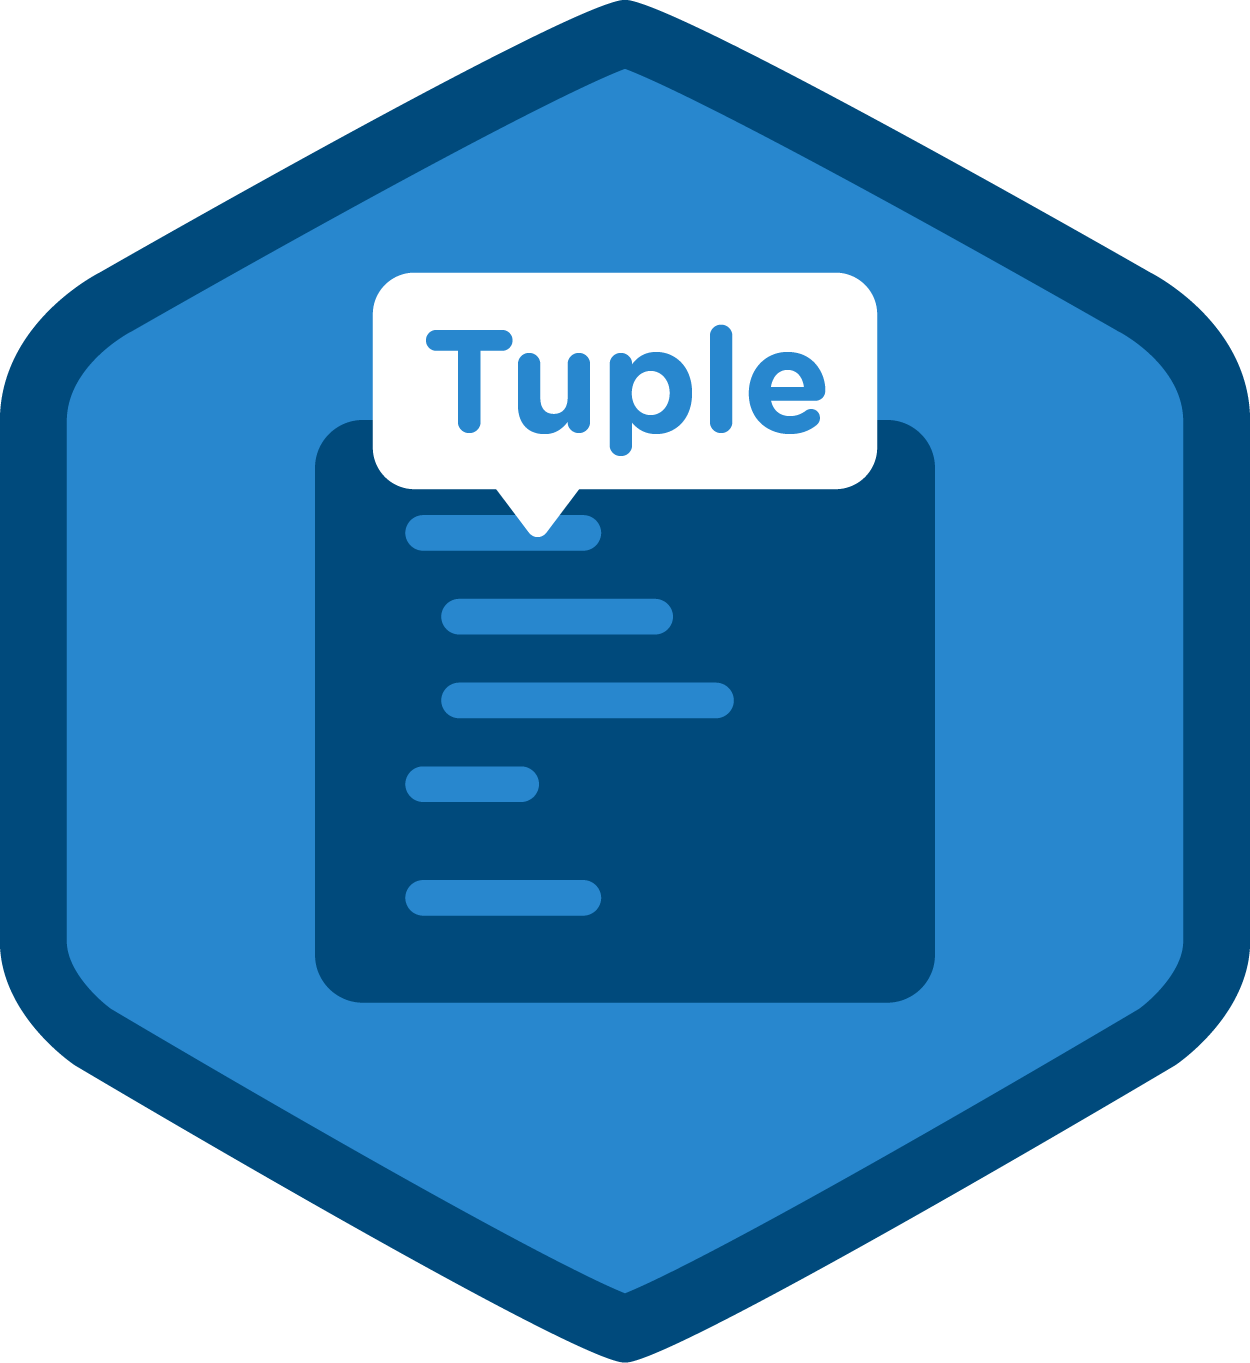 Swift Parameters and Tuples